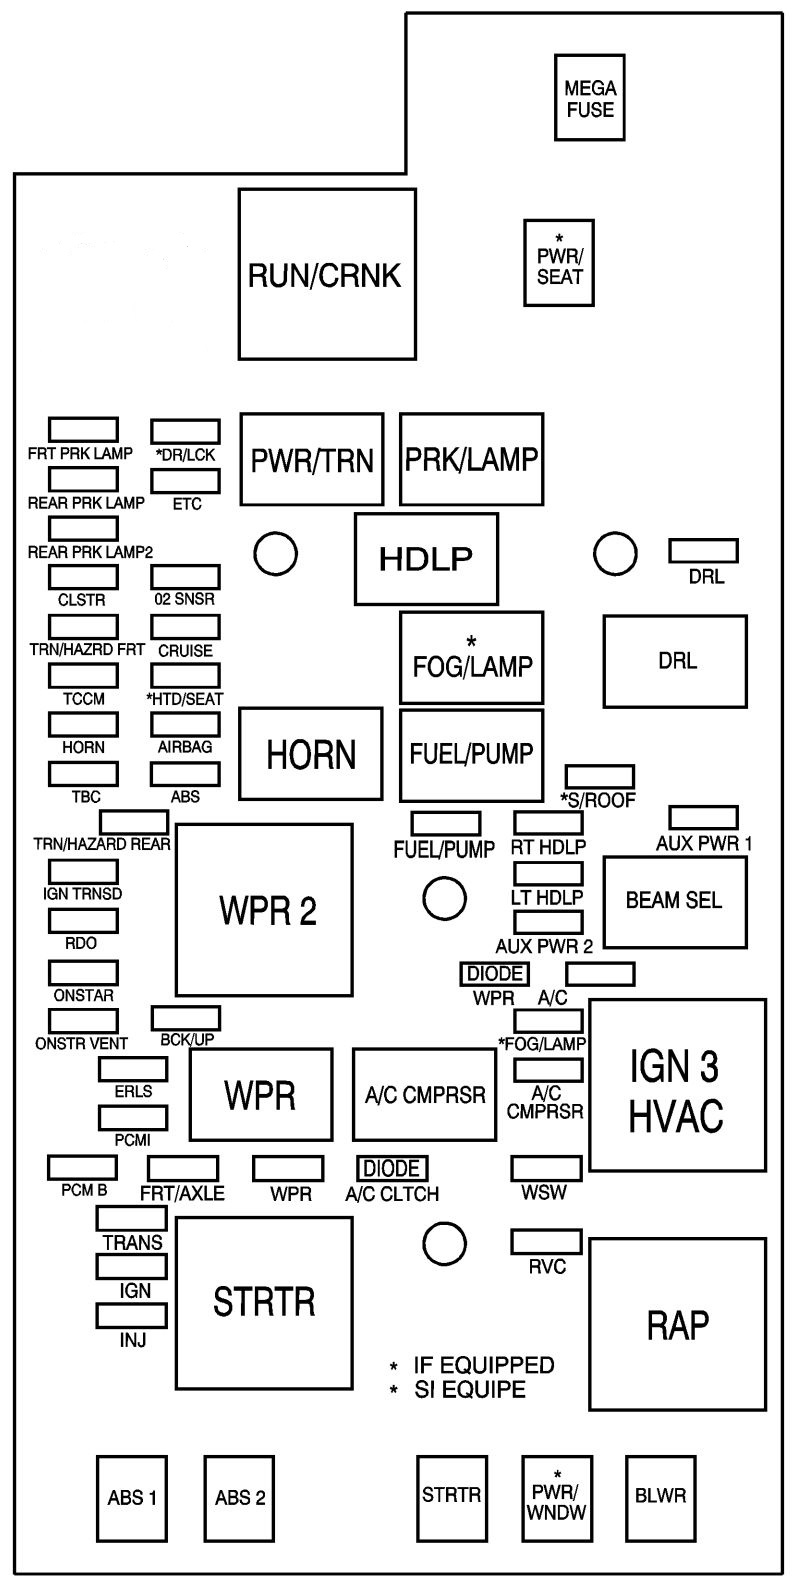 2005 chevy equinox fuse box diagram chevrolet colorado mk1 (2004 – 2012) – fuse box diagram ...